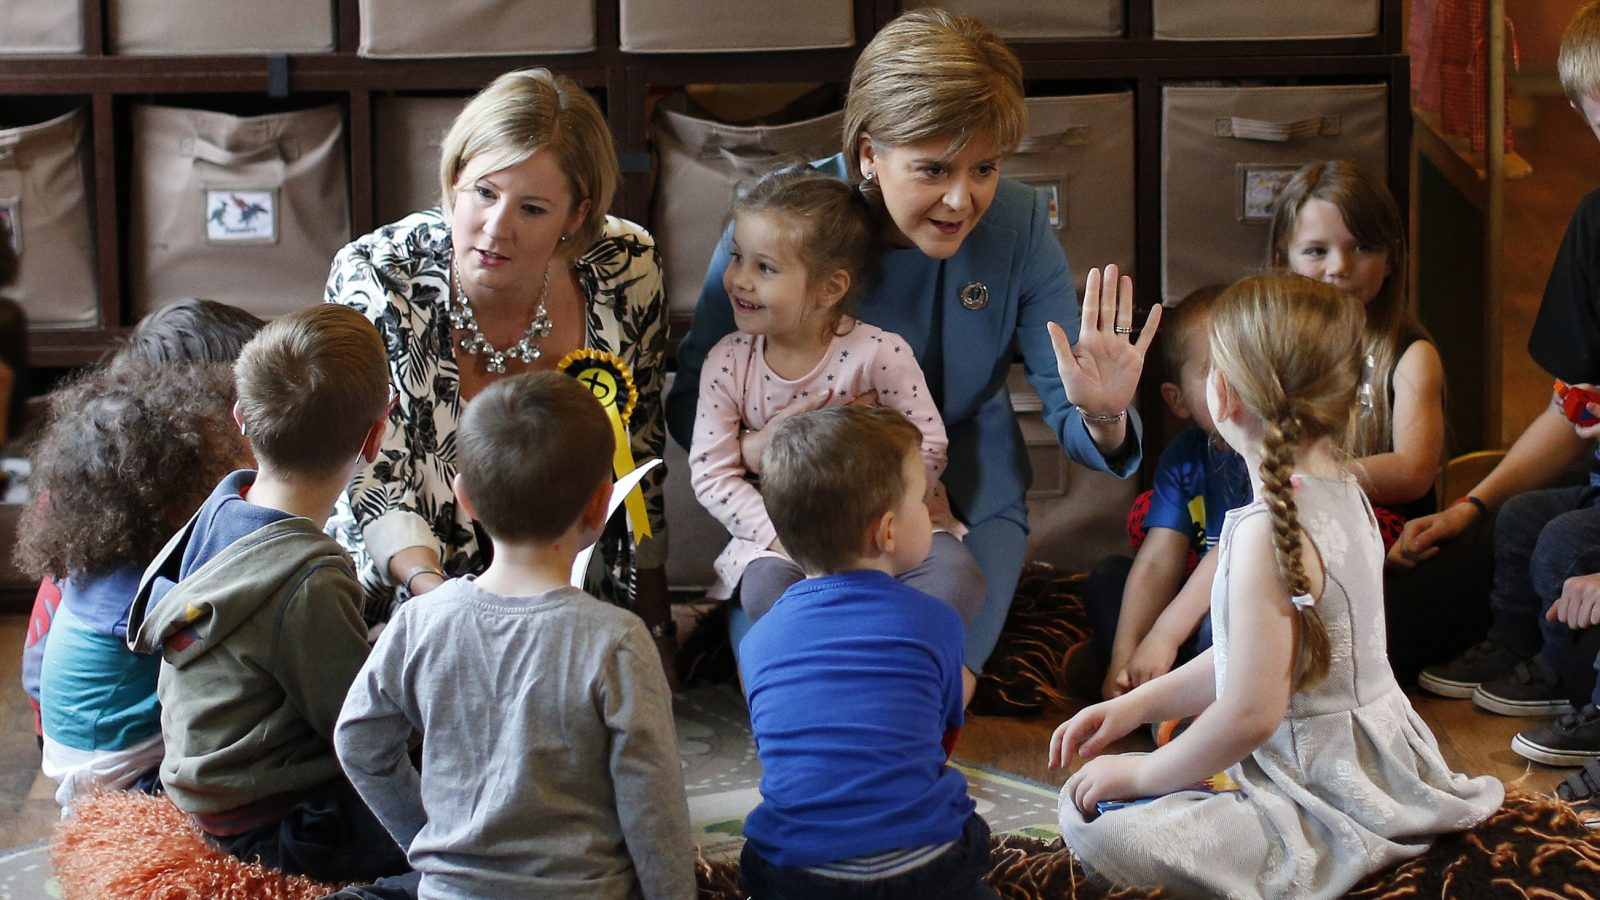 Nicola Sturgeon, leader of the Scottish National Party, gestures to children during an election visit to the ABC Nursery in Livingston, Britain May 5, 2015. Britain will go to the polls in a national election on May 7. REUTERS/Russell Cheyne - RTX1BMFU